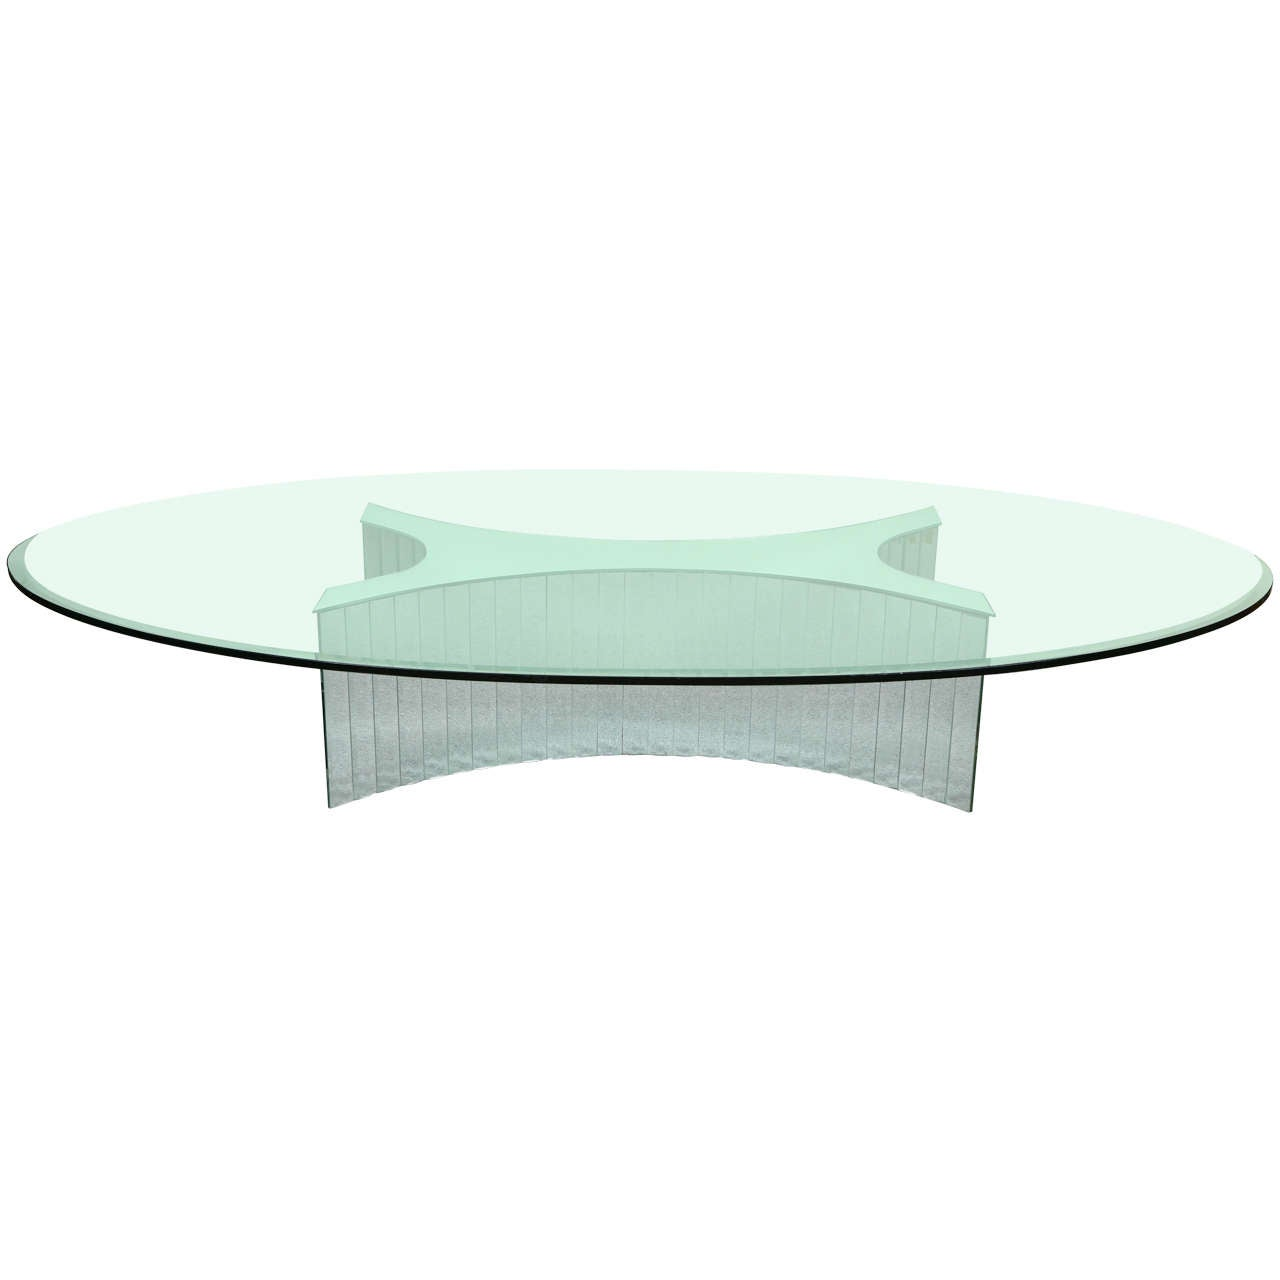 Fabulous large mirror snd glass oval coffee table at 1stdibs Large glass coffee table